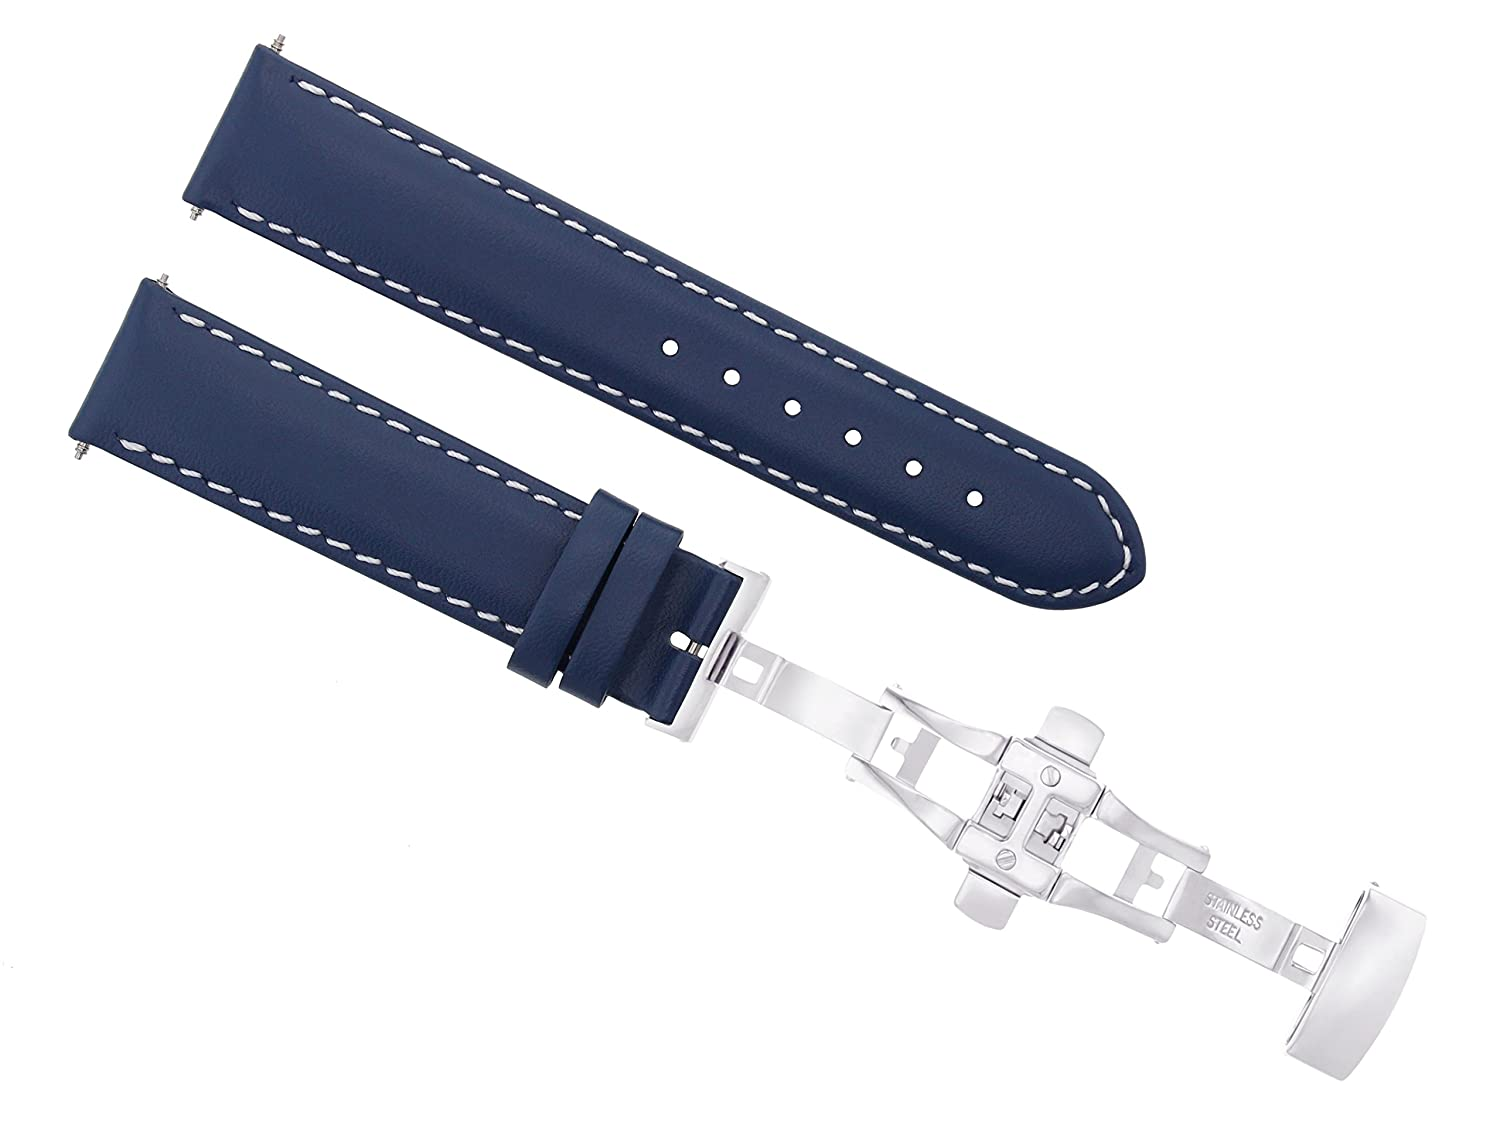 18 – 19 – 20 – 22 – 24 mm本革バンドスムーズな導入Clasp for Longinesブルー# 2 24mm Blue with white stitching  Blue with white stitching 24mm B07DHMVWH5